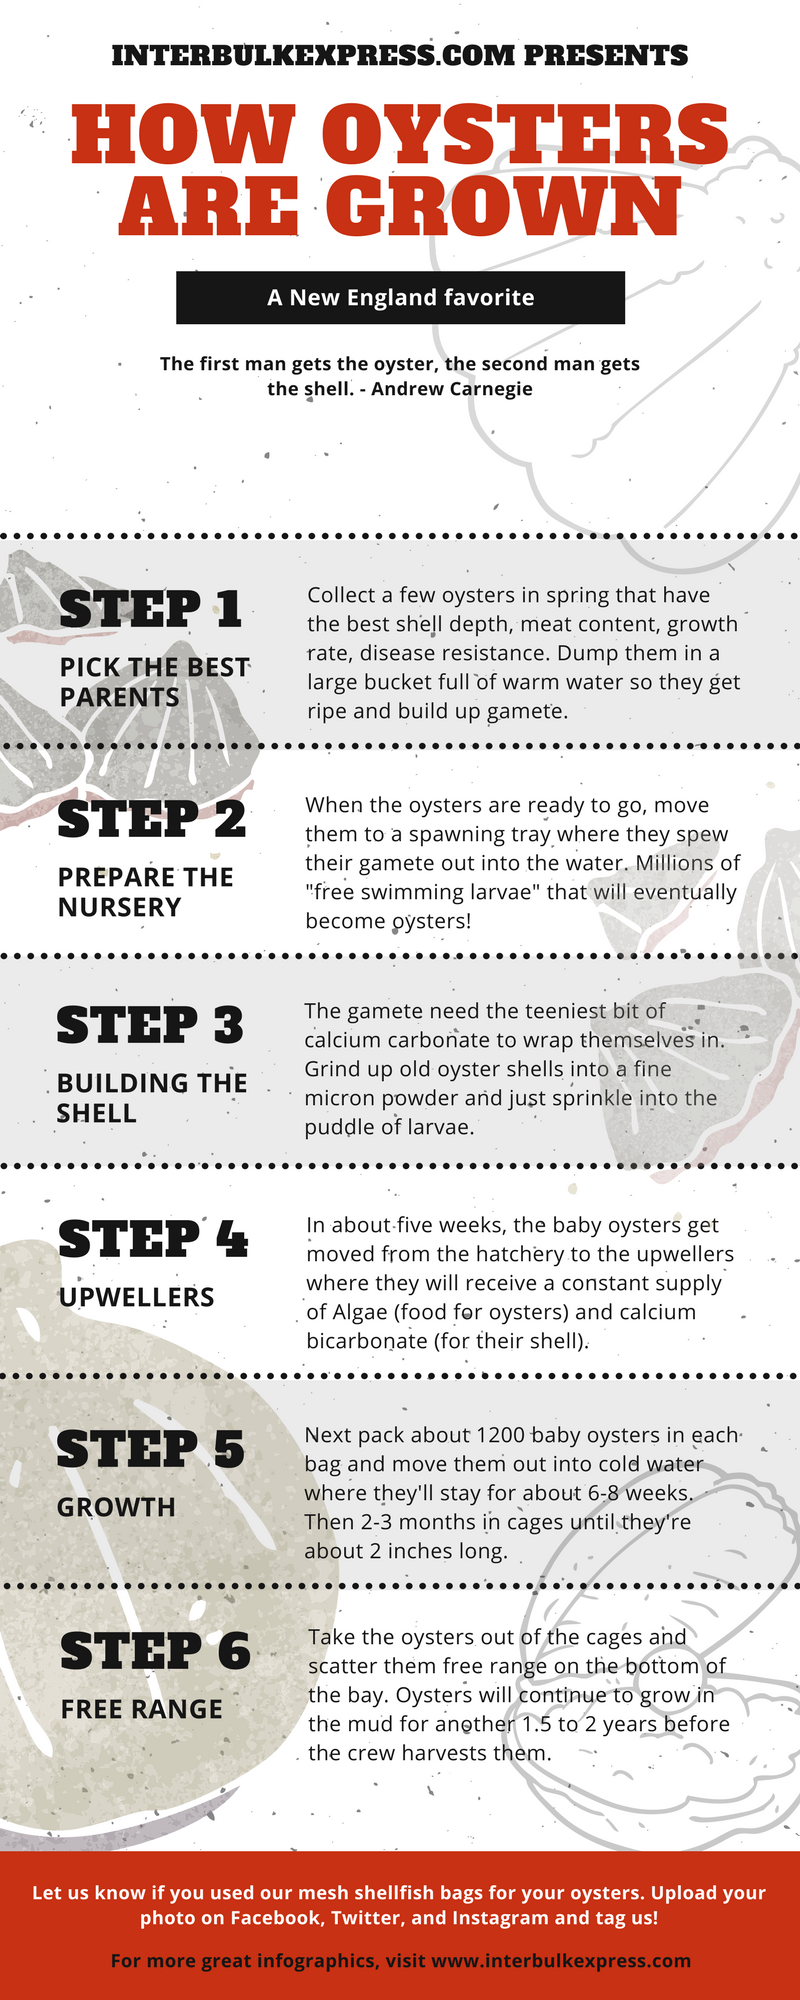 How Oysters Grow Infographic